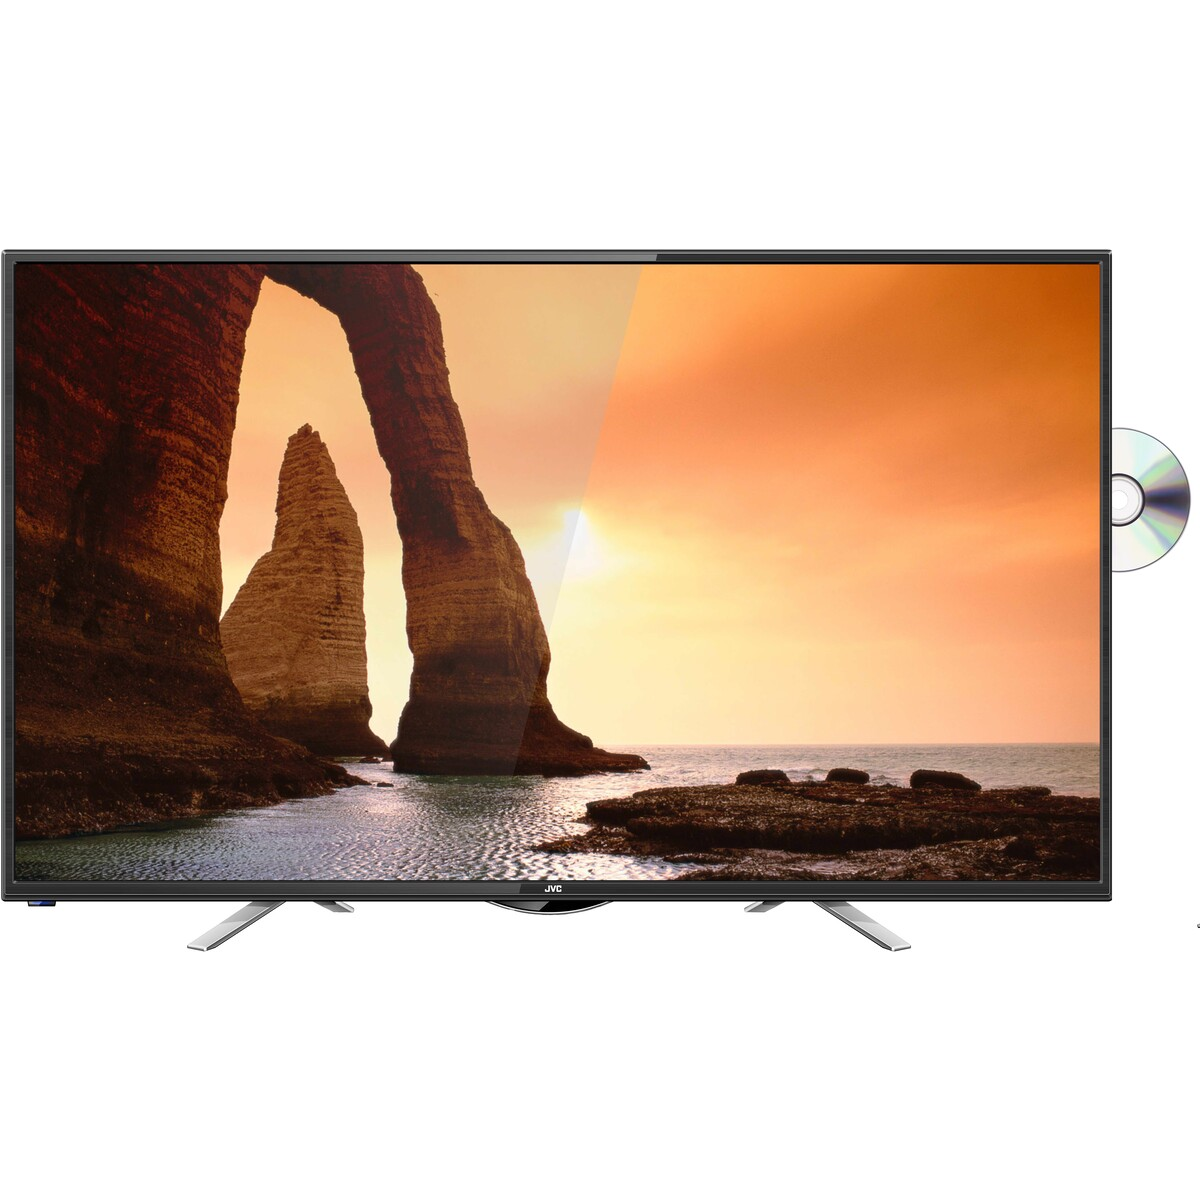 Jvc 32 Led Tv With Dvd Player Big W